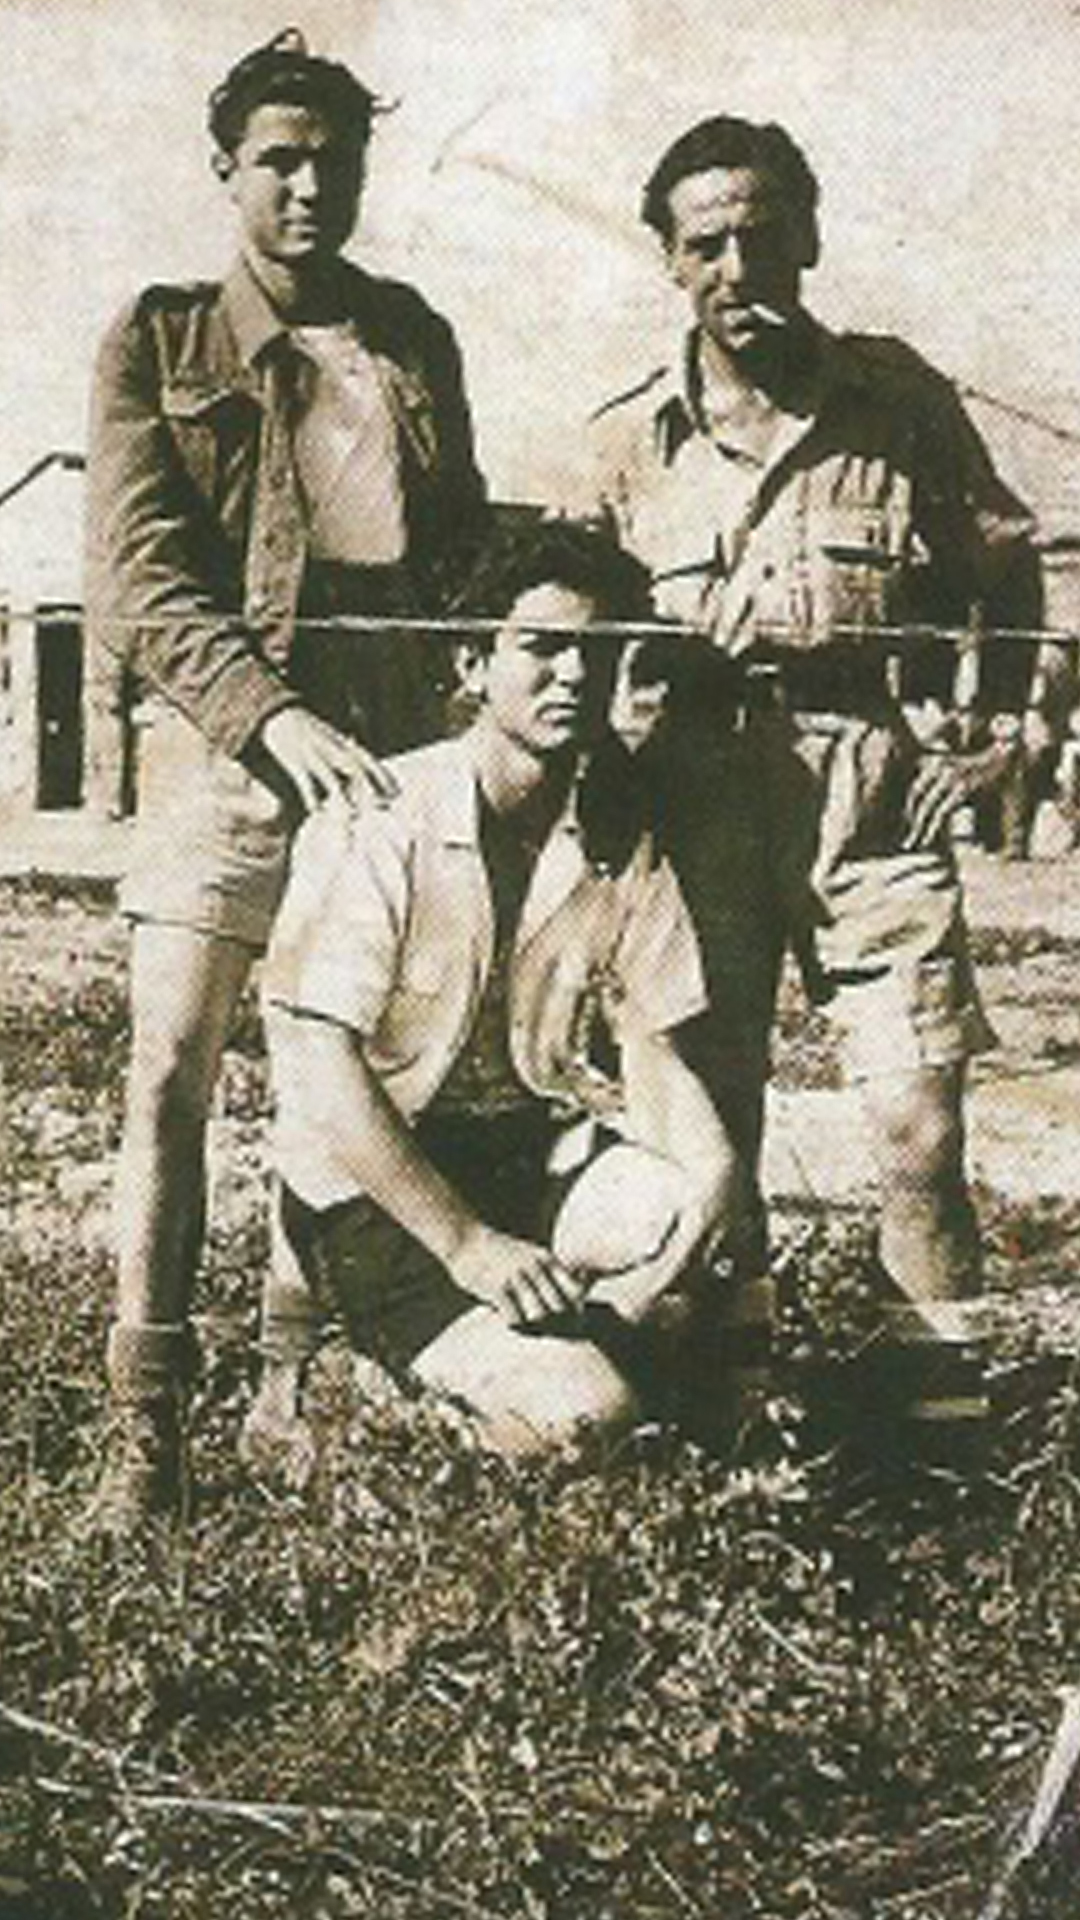 Joe on right, with two Italian workers